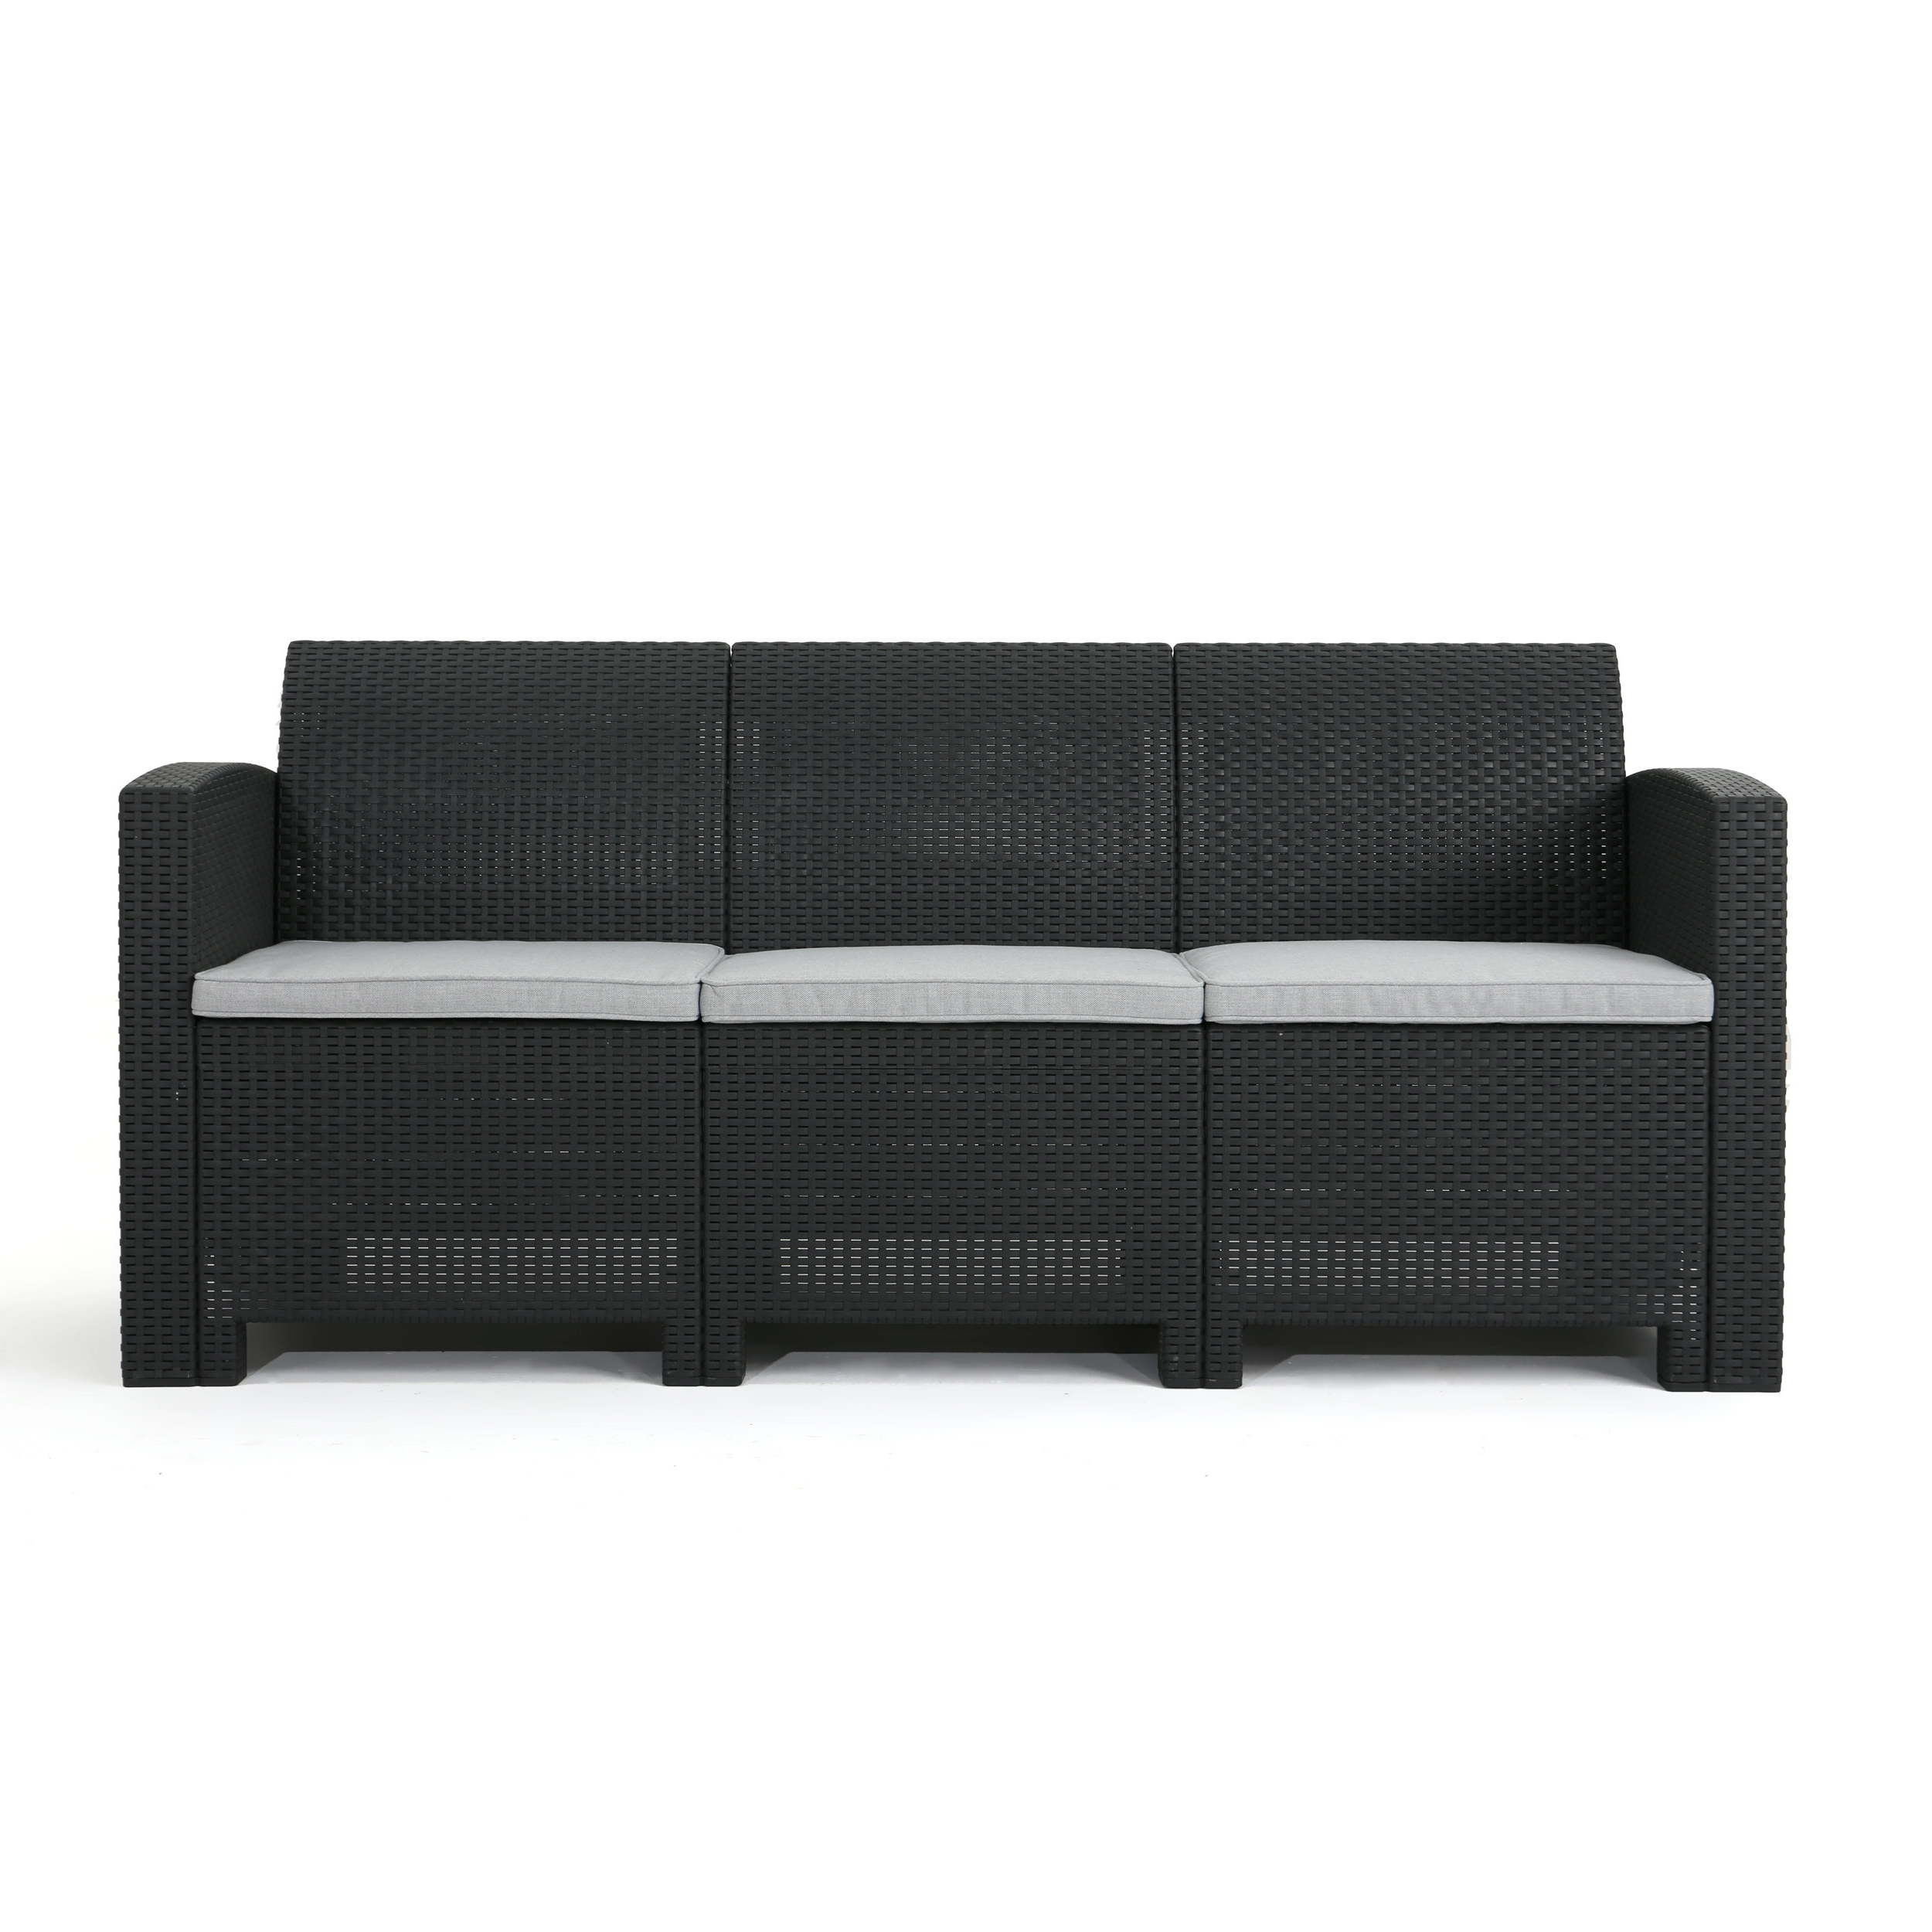 Newest Stockwell Patio Sofas With Cushions In Yoselin Patio Sofa With Cushions (View 4 of 20)